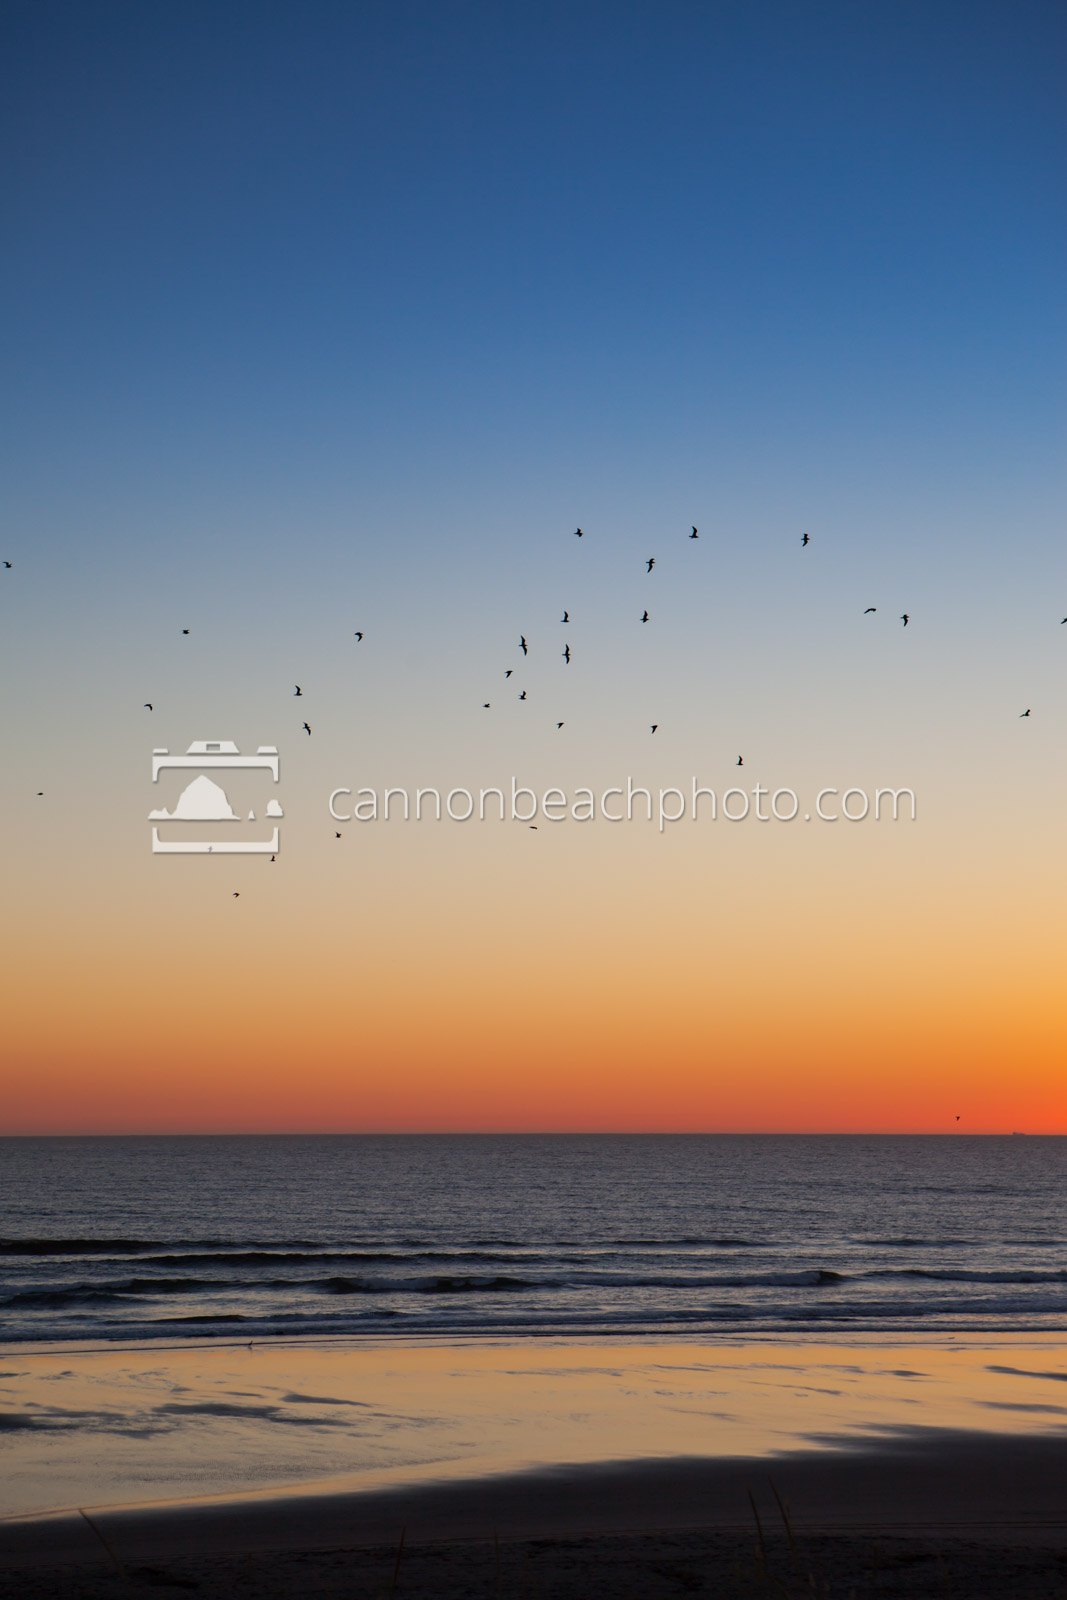 Twilight Seagulls, Vertical